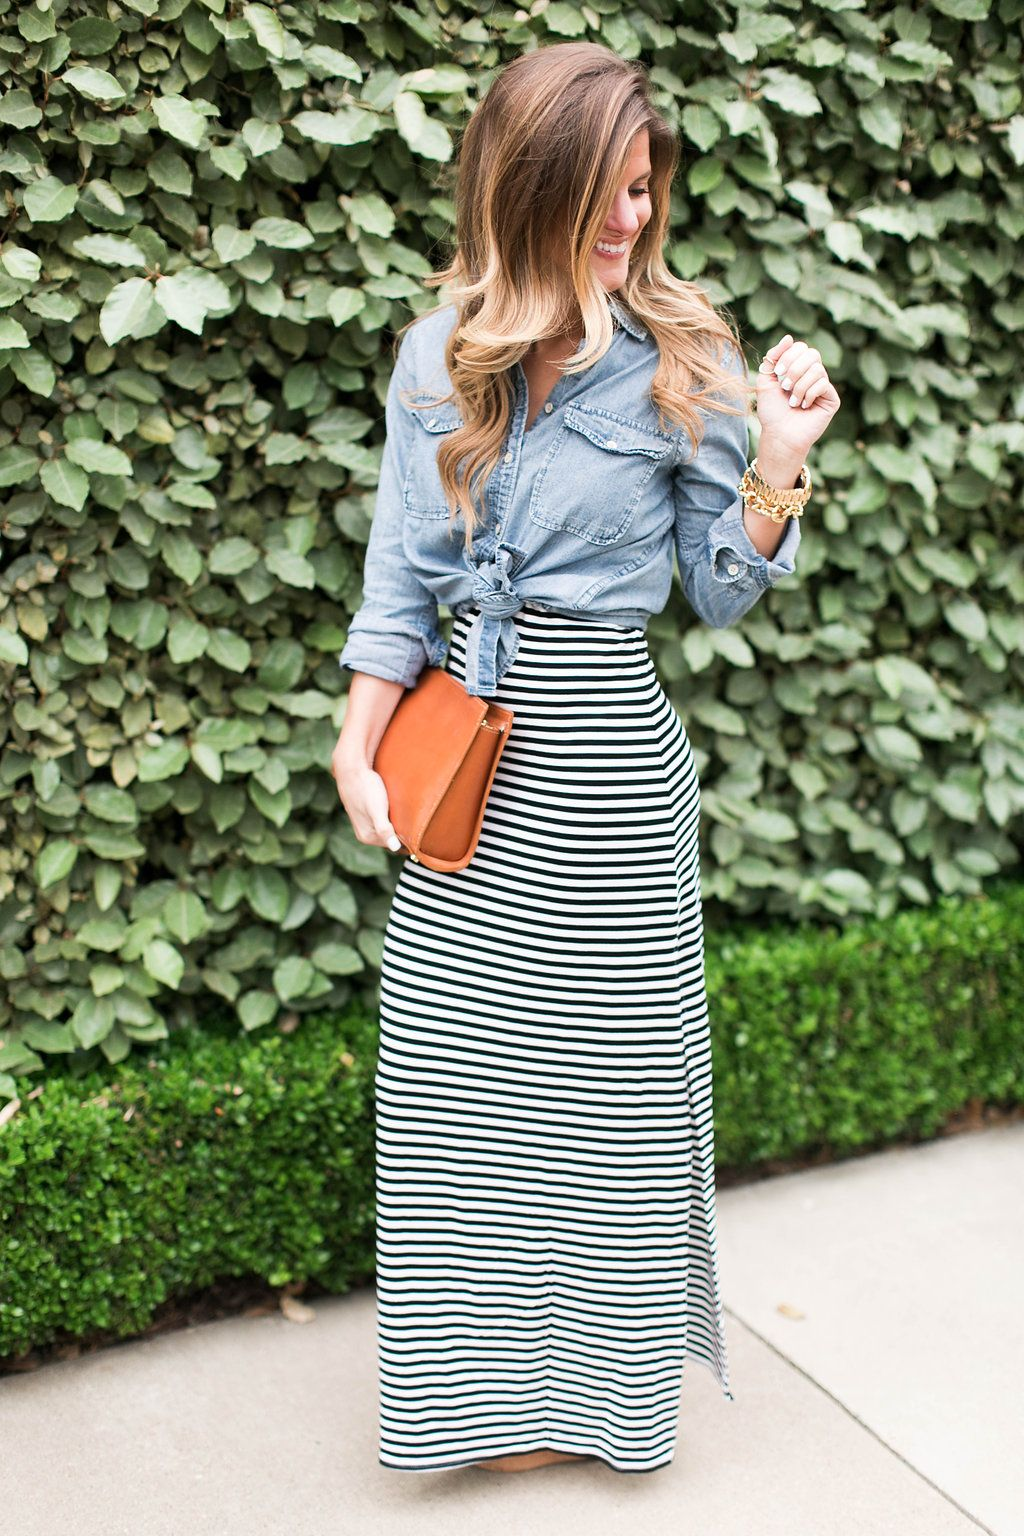 de9661e6 How to Wear a Denim Shirt // 13+ ways to style your favorite denim shirt //  striped maxi dress + chambray shirt on top tied up + gigi NY Cognac leather  ...